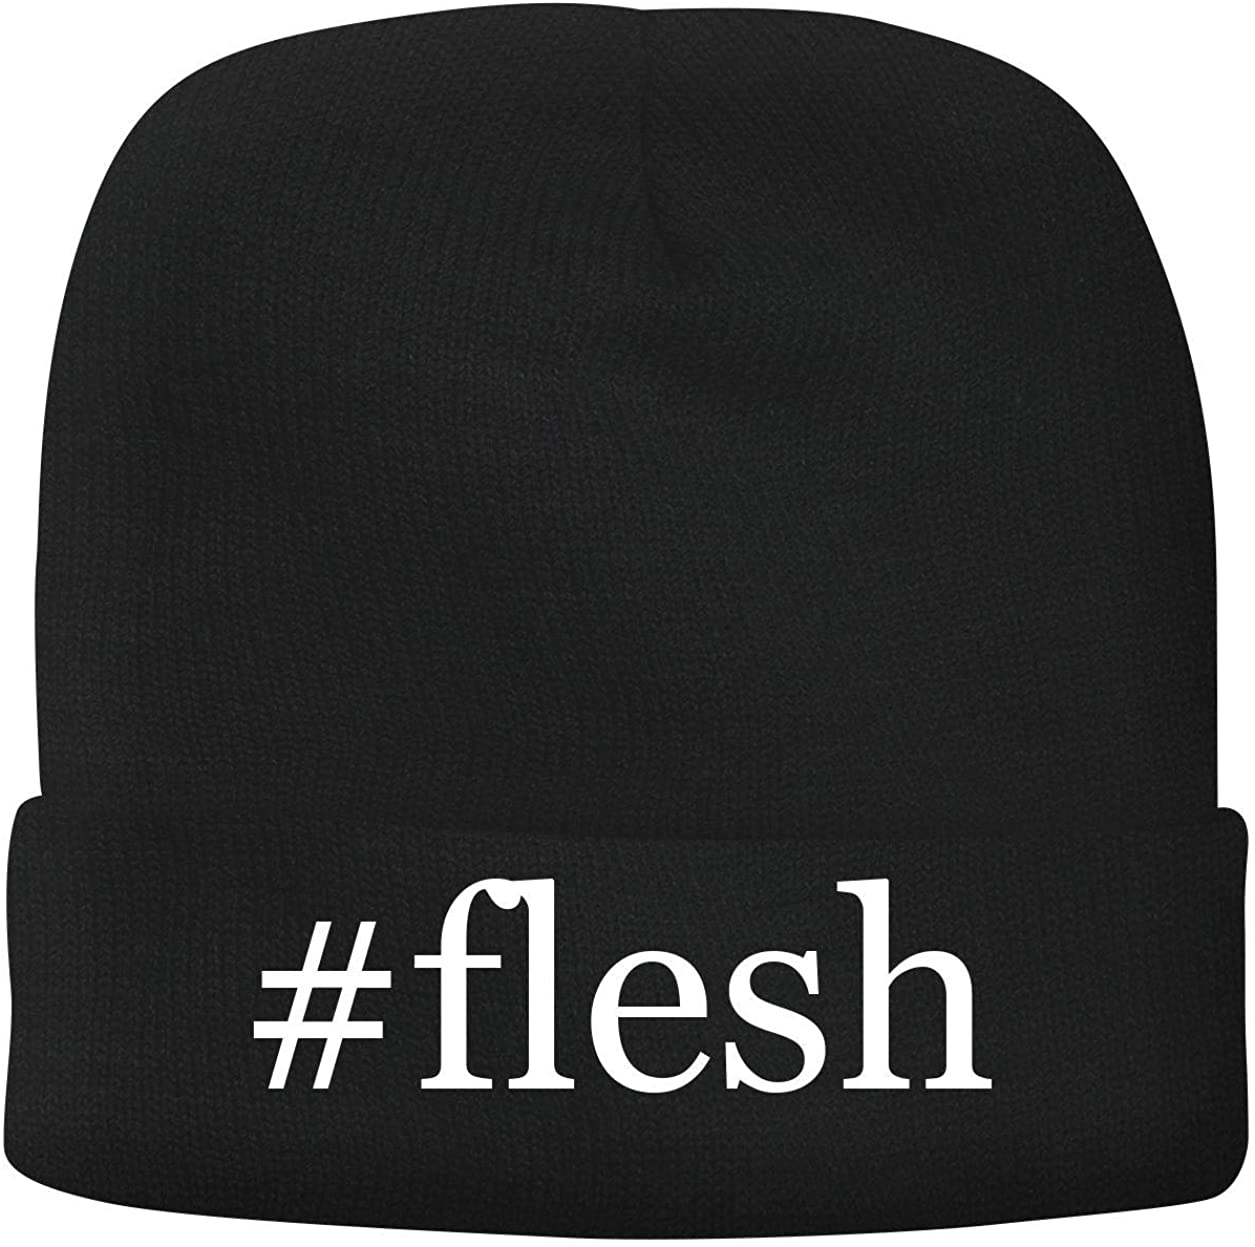 BH Cool Designs #Flesh - Men's Hashtag Soft & Comfortable Beanie Hat Cap